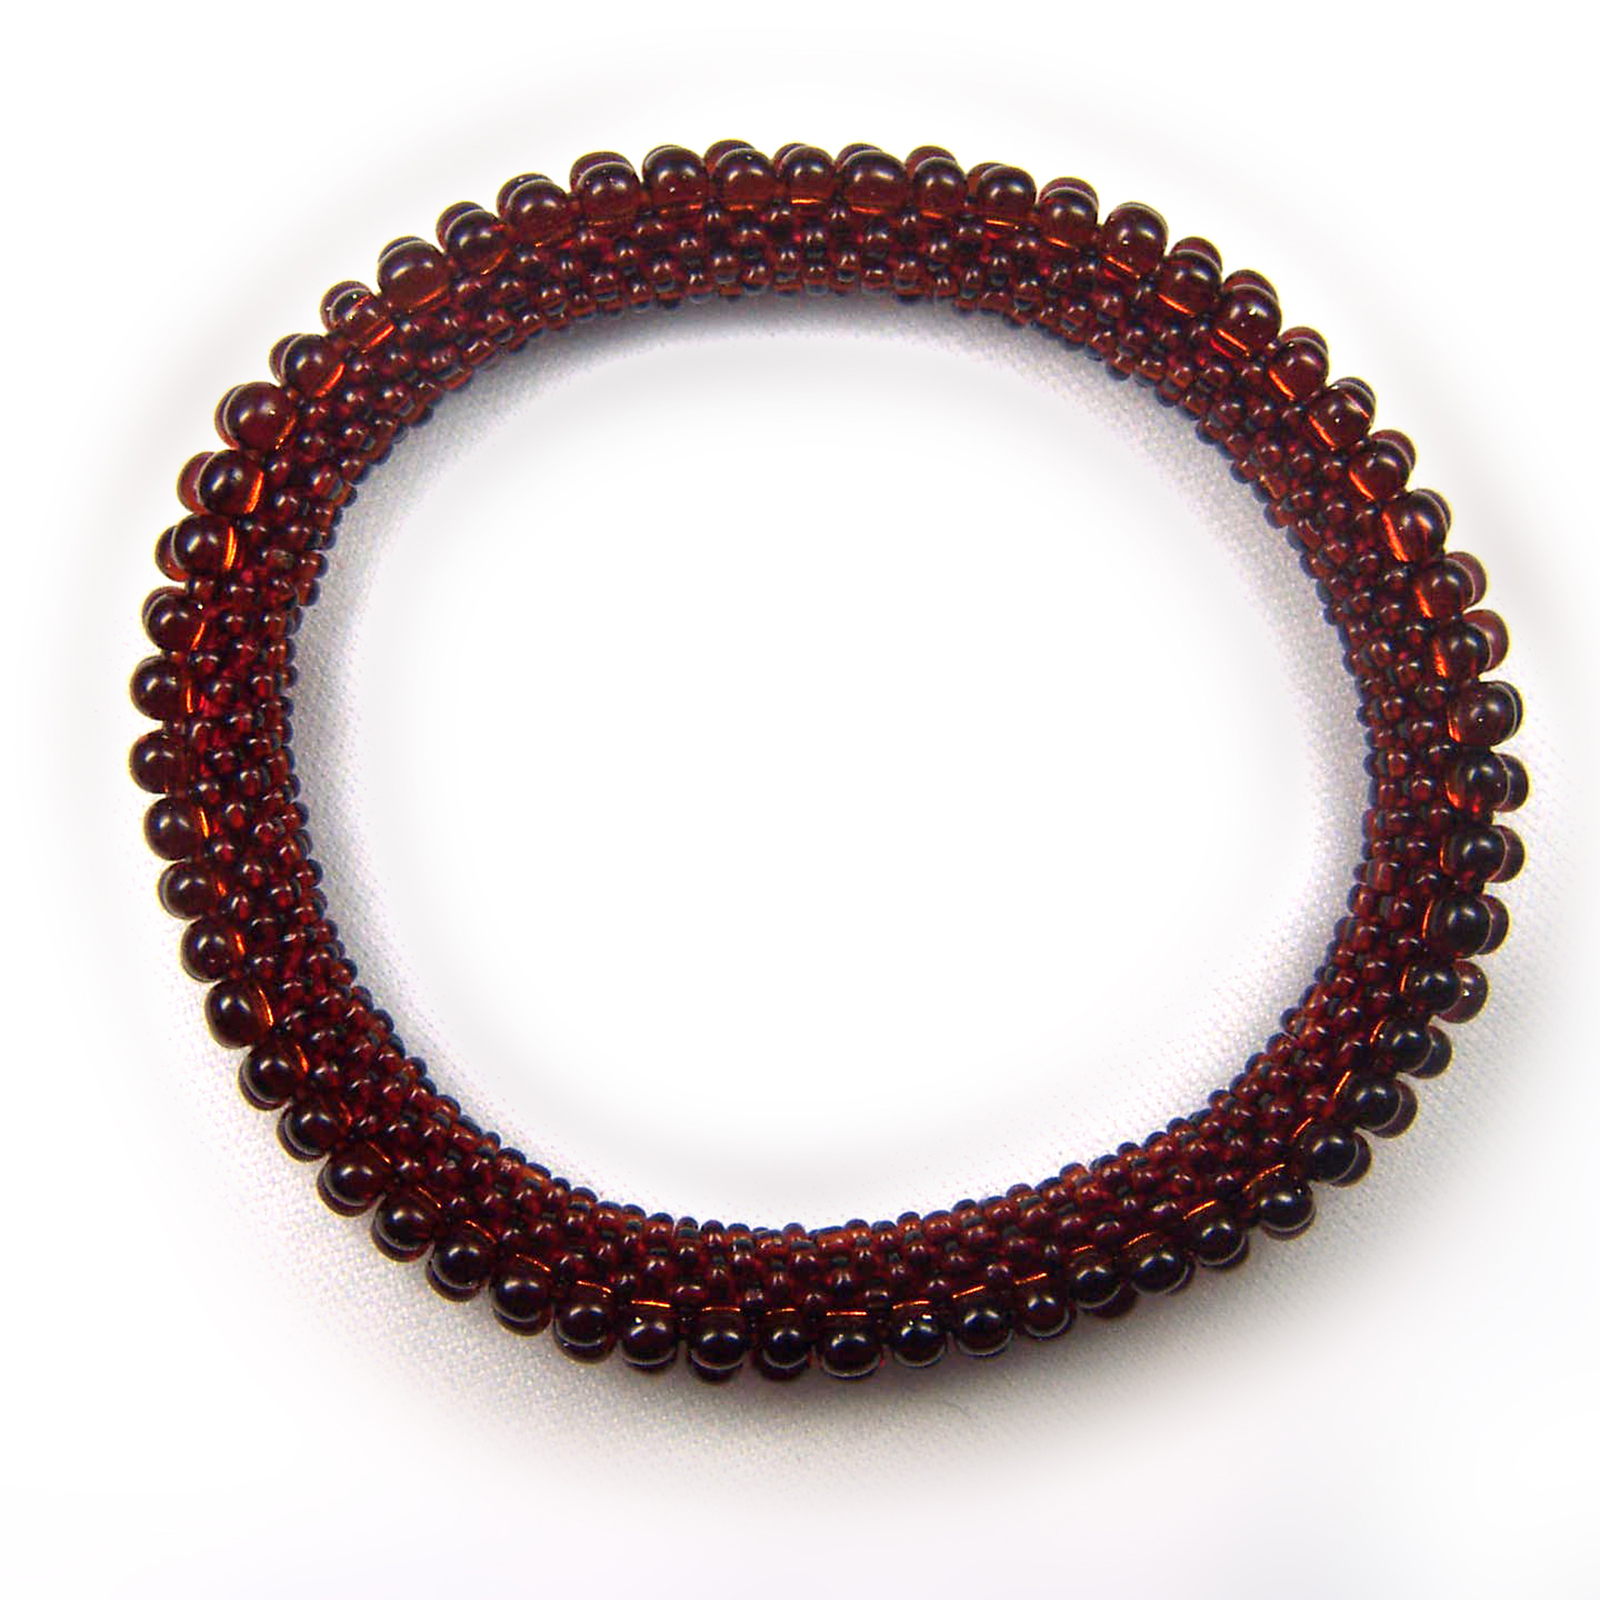 Designer Jewelry - Pattern for red bracelet